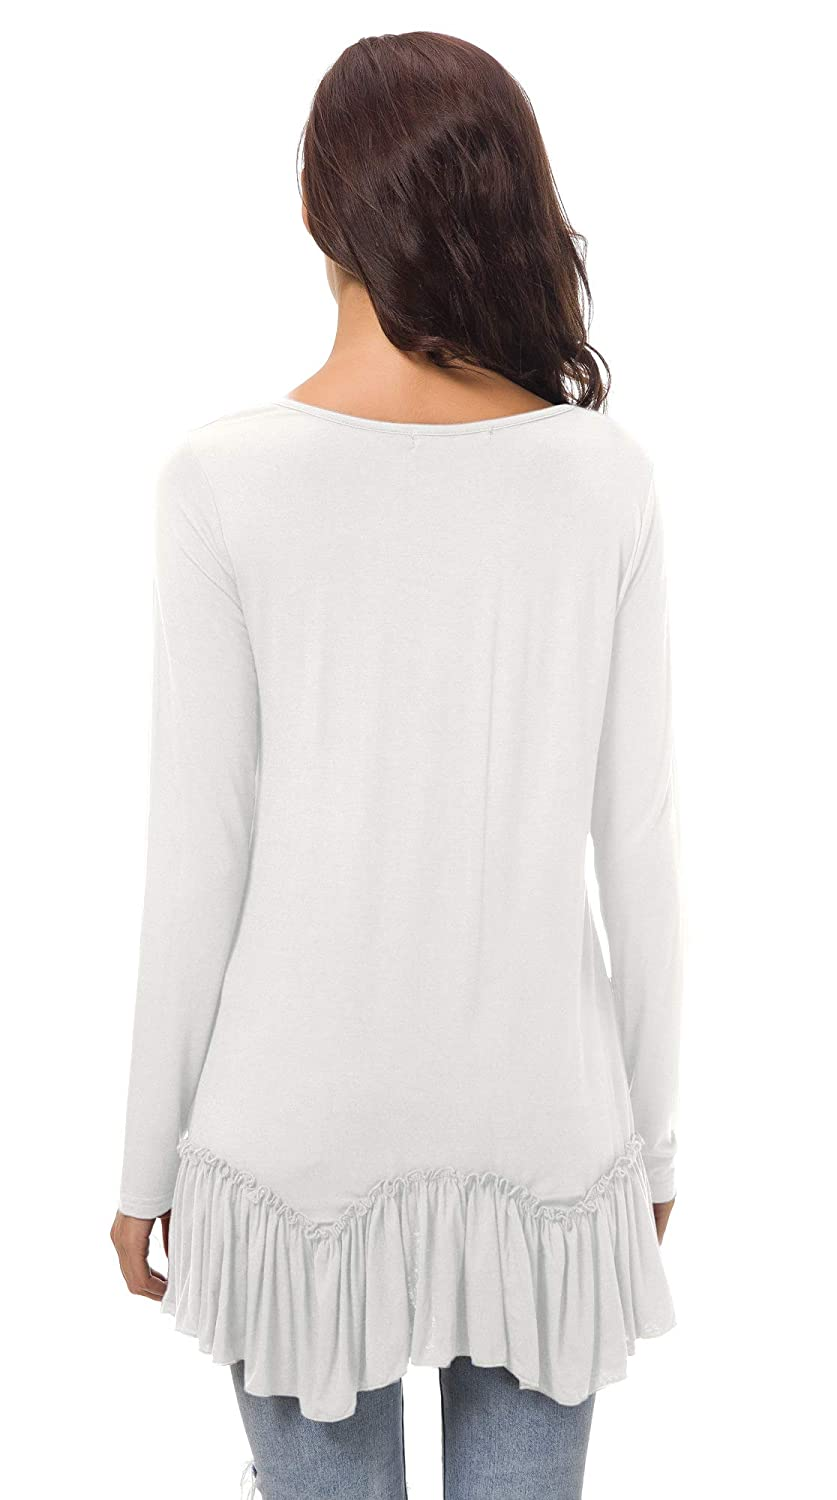 Urban CoCo Womens Casual T-Shirt Solid Long Sleeve Tunic Tops